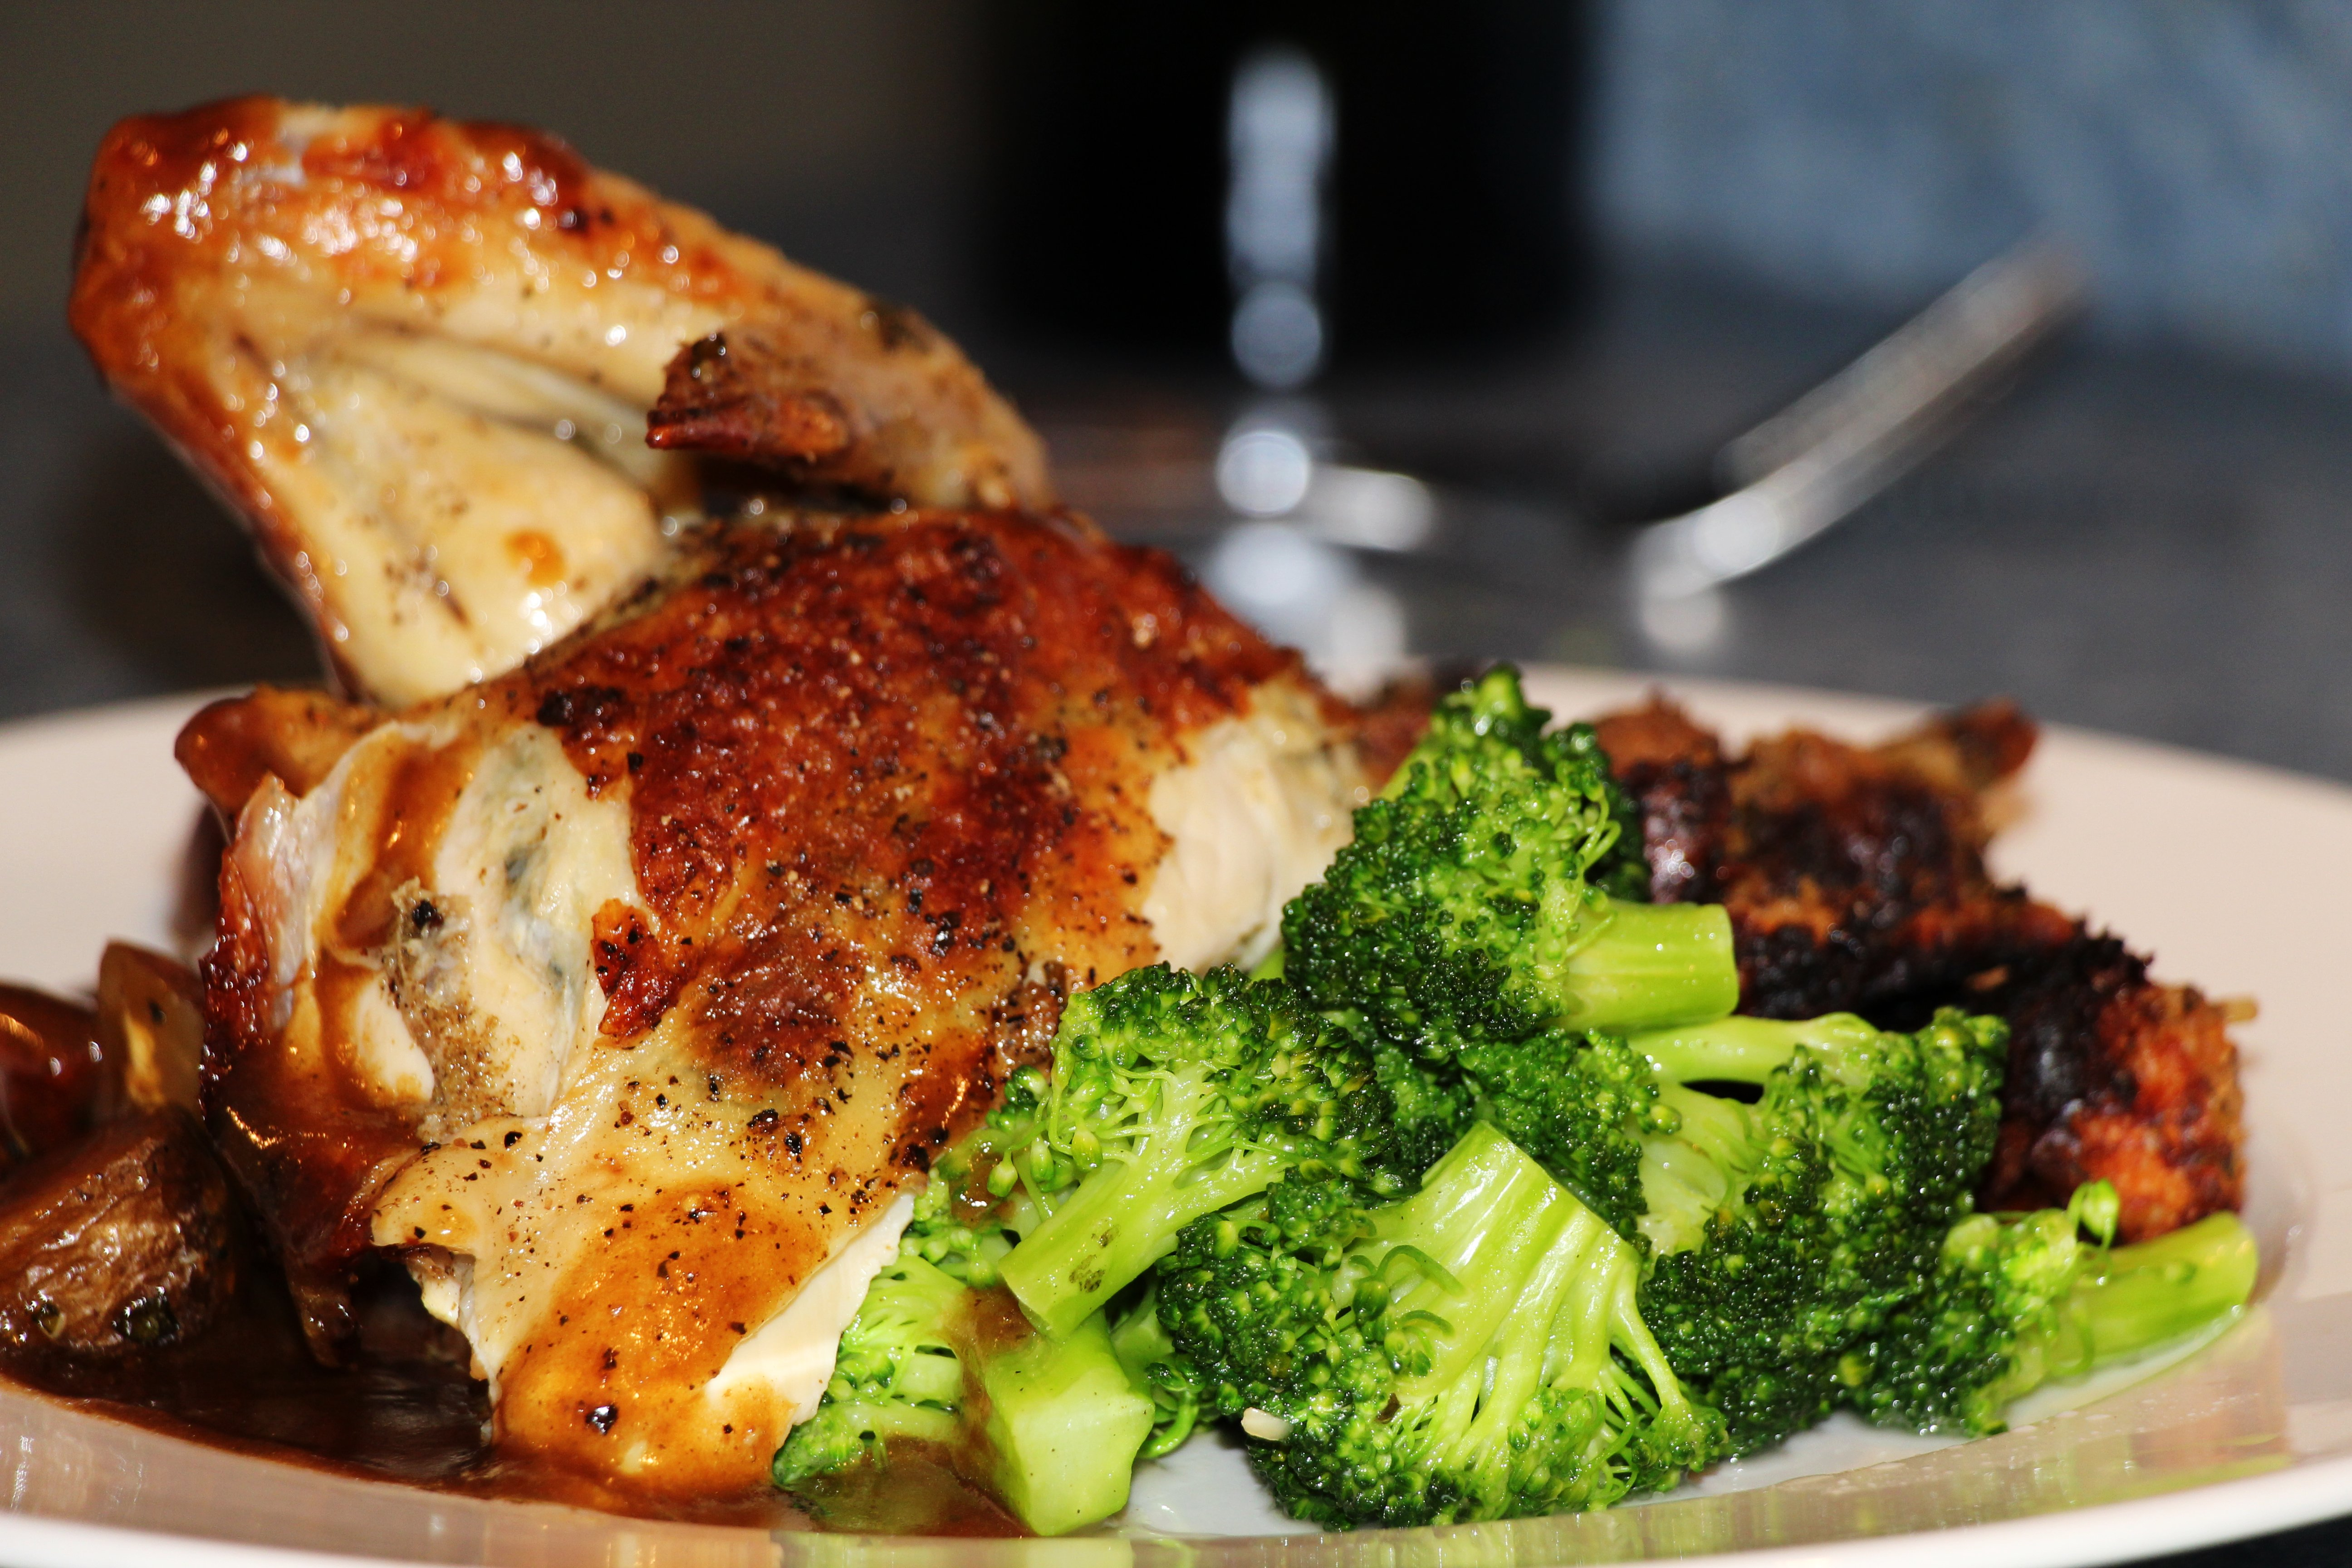 SND Note: Bone-in, skin-on dark chicken meat is highly recommended for the best flavor. We prefer the use of chicken thighs. Boneless, skinless thighs can be .